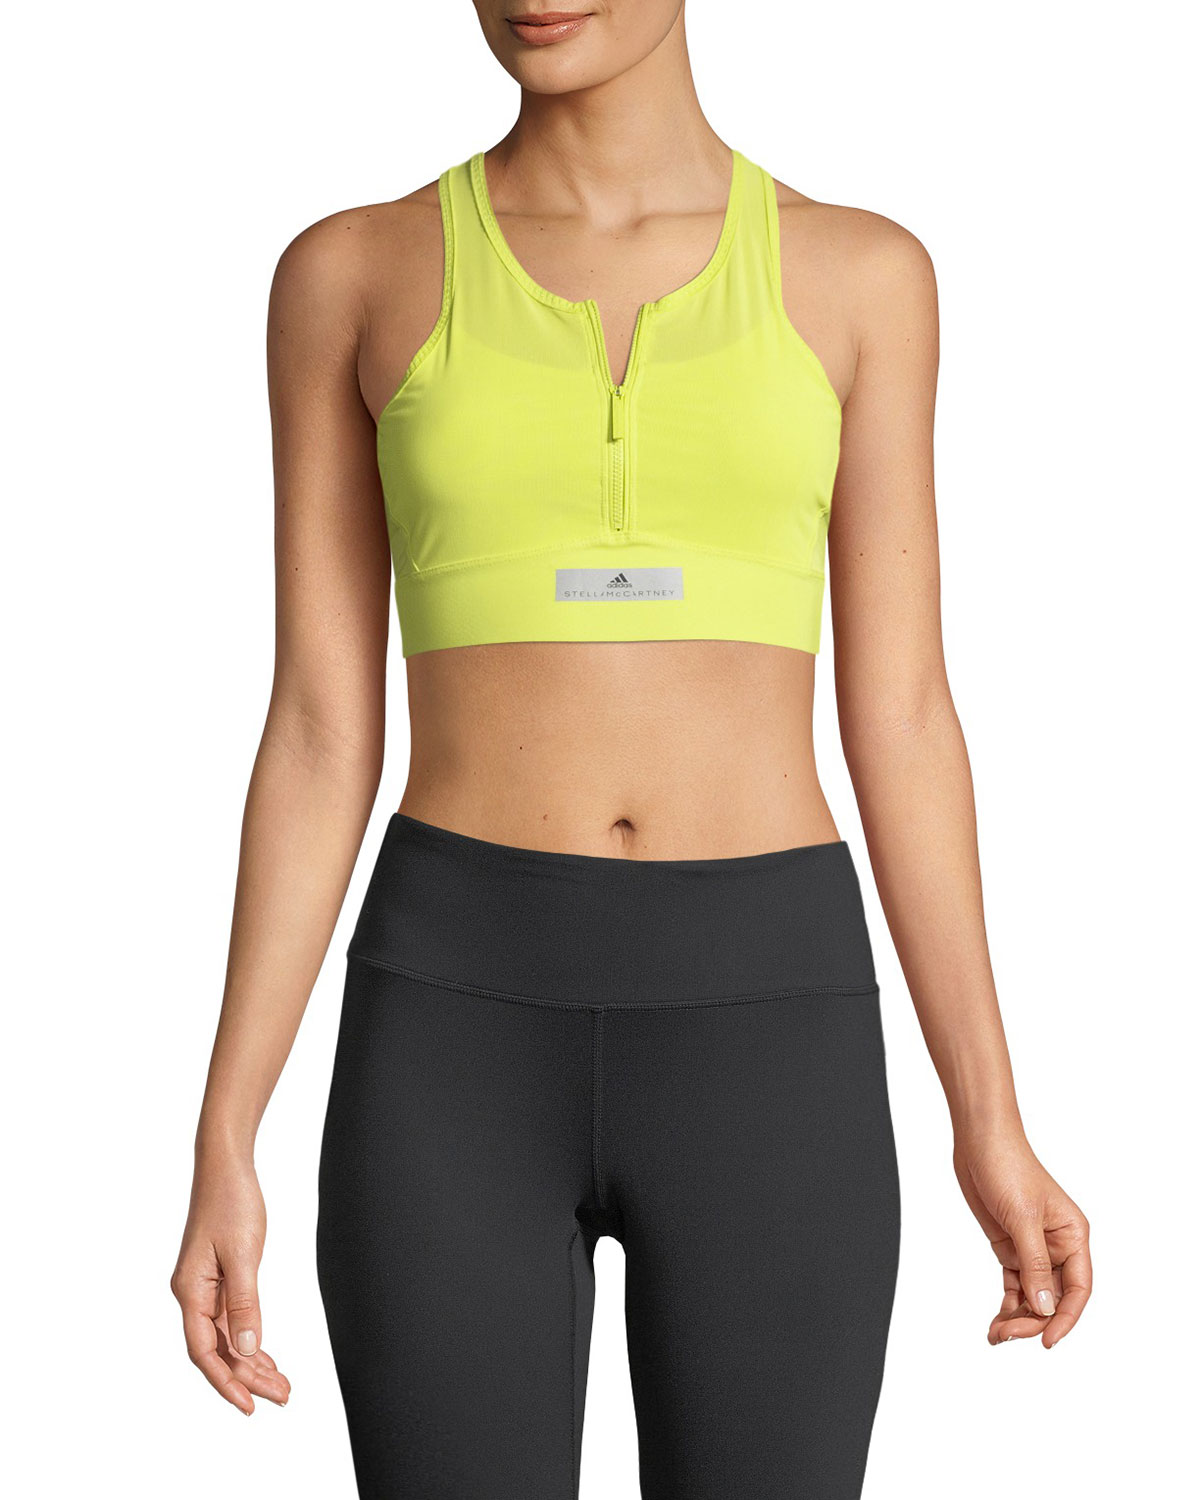 6981fef393f41 adidas by Stella McCartney Run Adizero Performance Crop Top